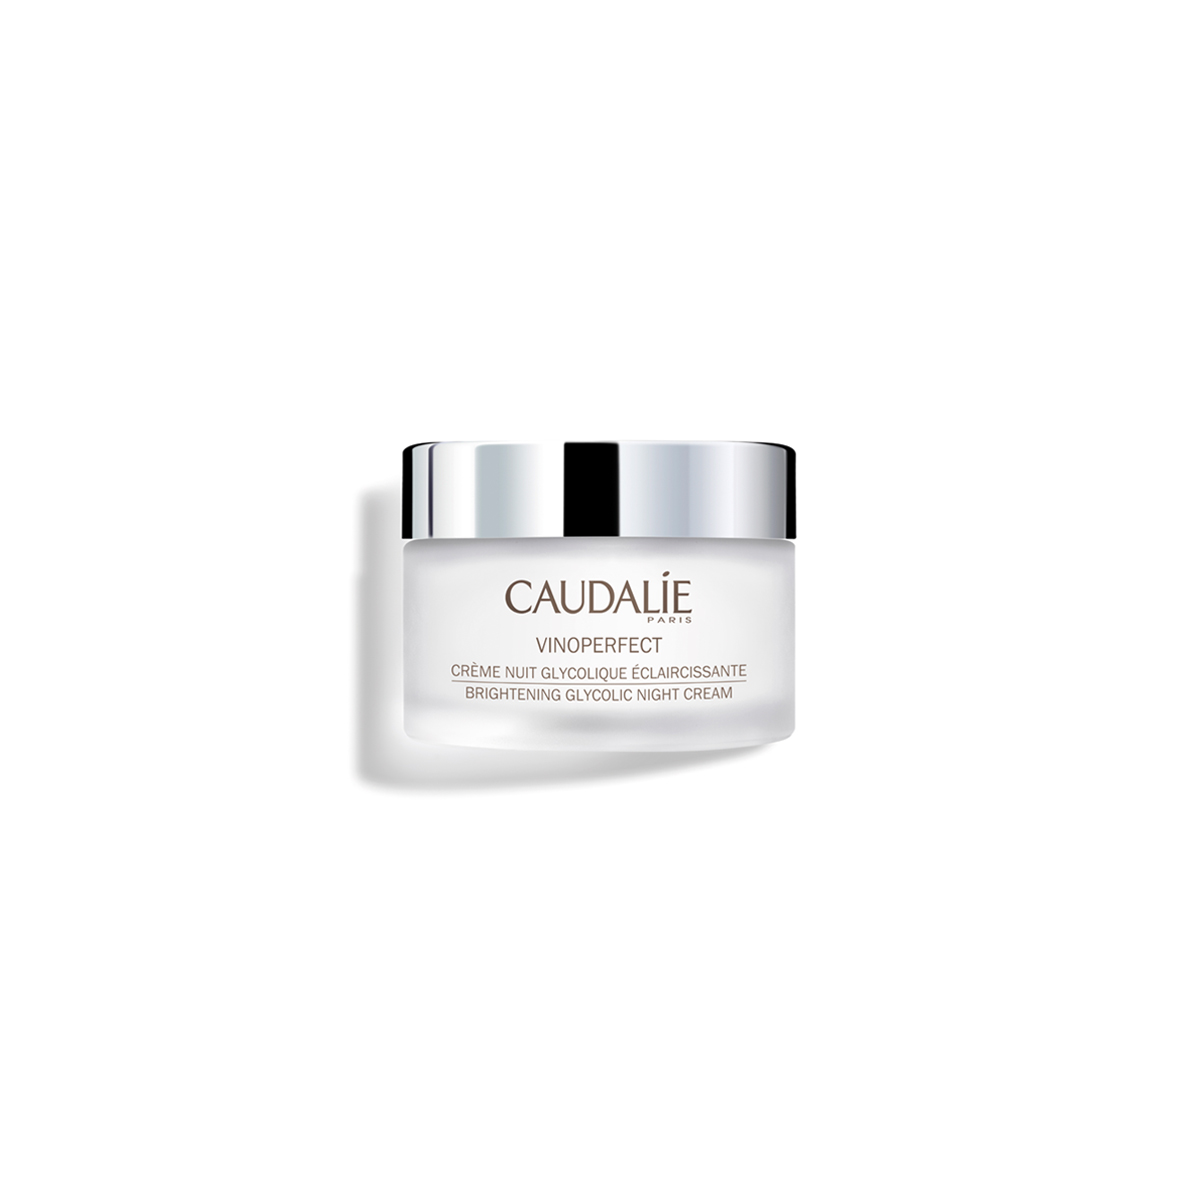 Brightening Glycolic Night Cream